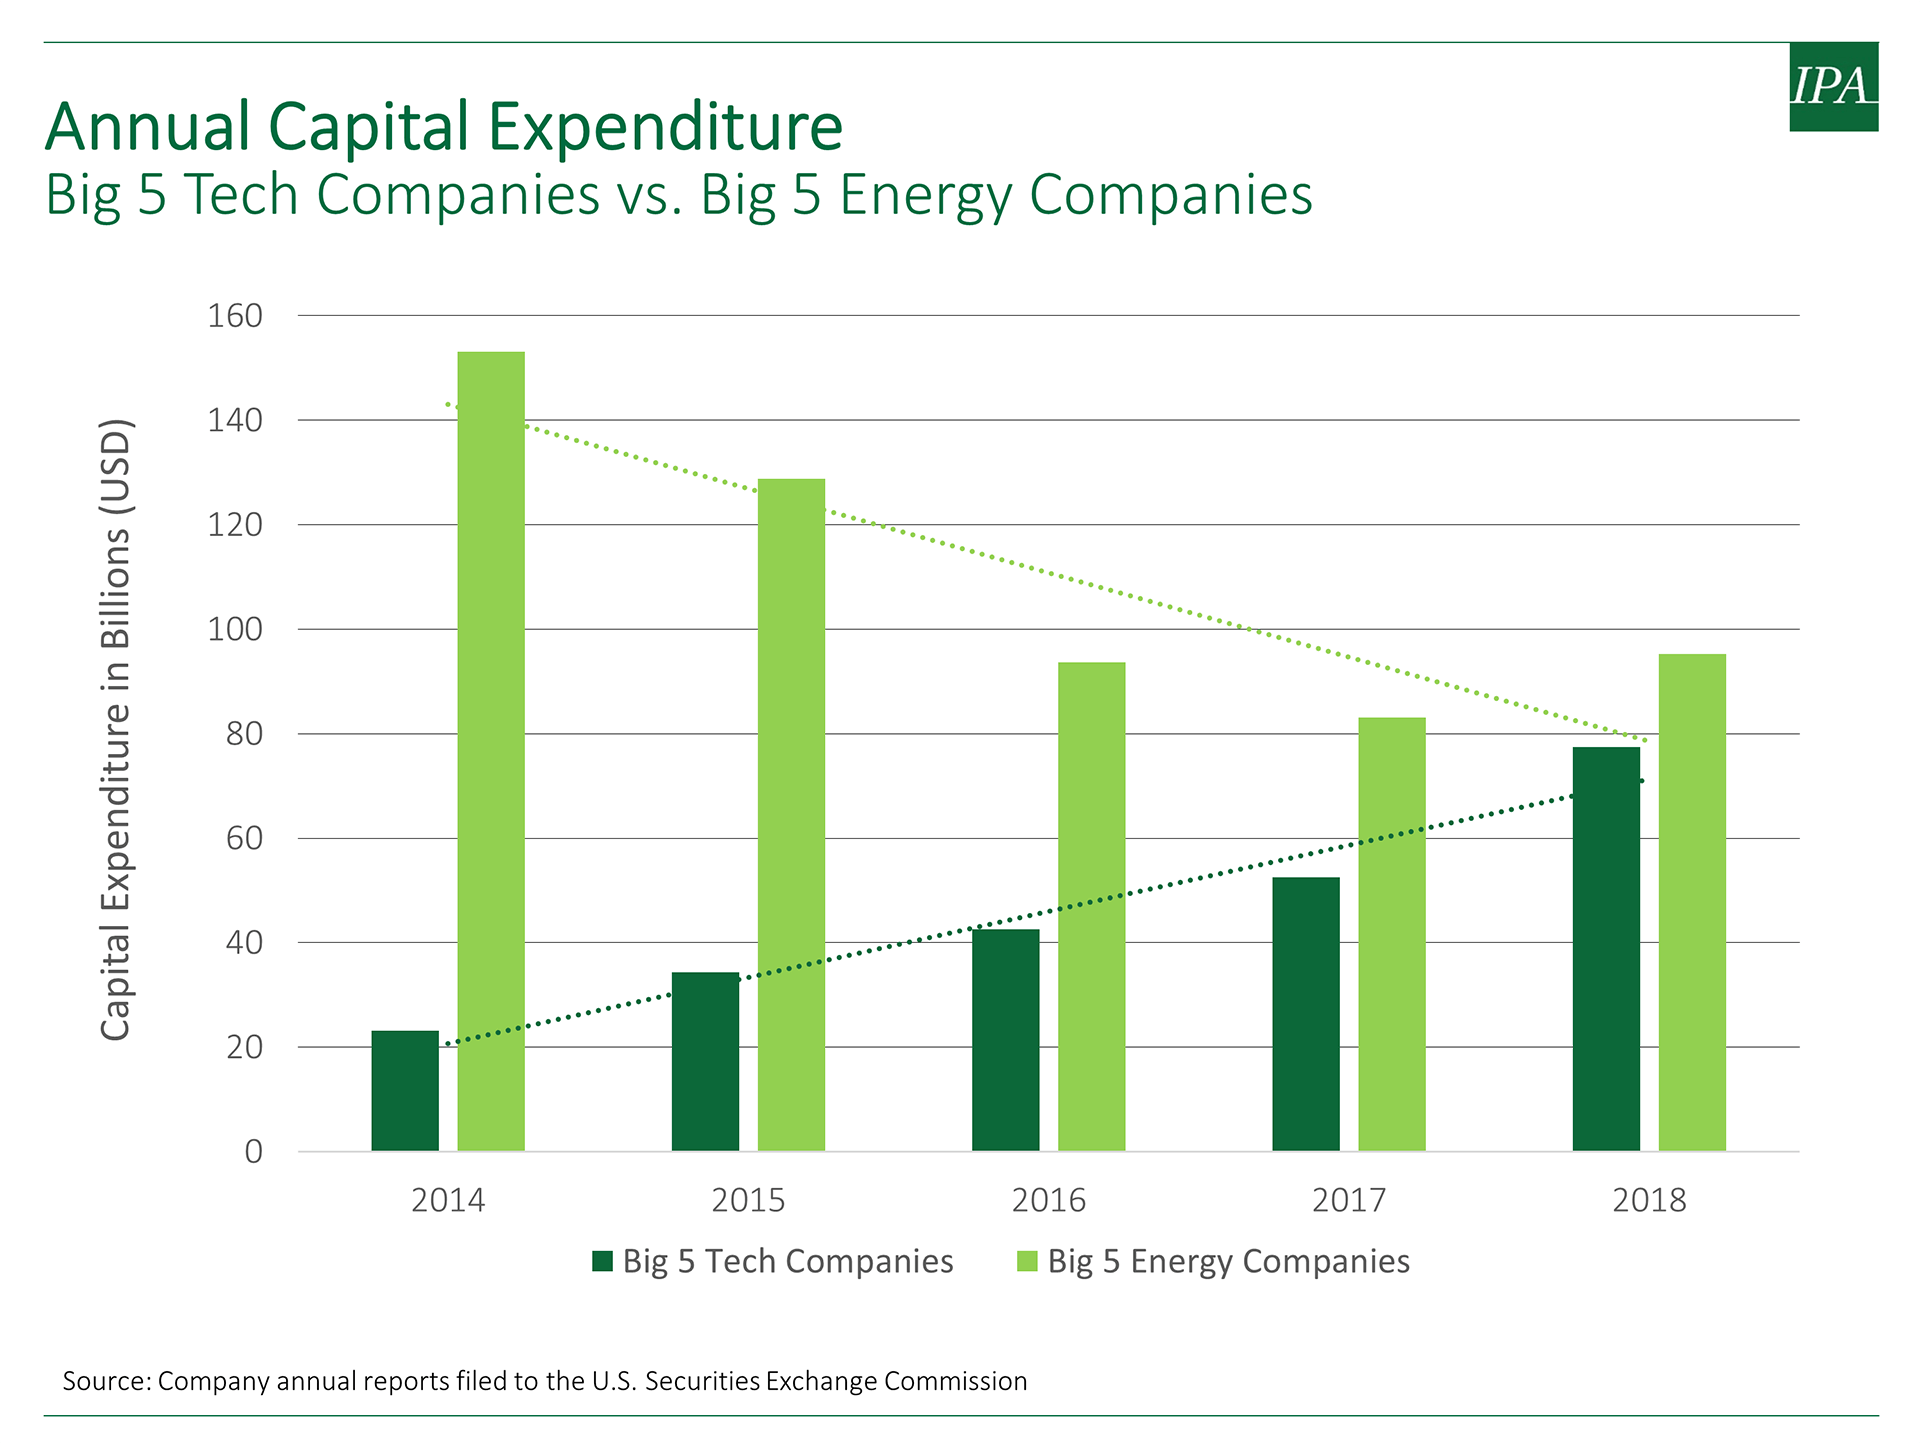 Graph showing how the gap between the annual capital expenditure of the big 5 energy companies versus the big 5 tech companies has closed from 2014 to 2018.